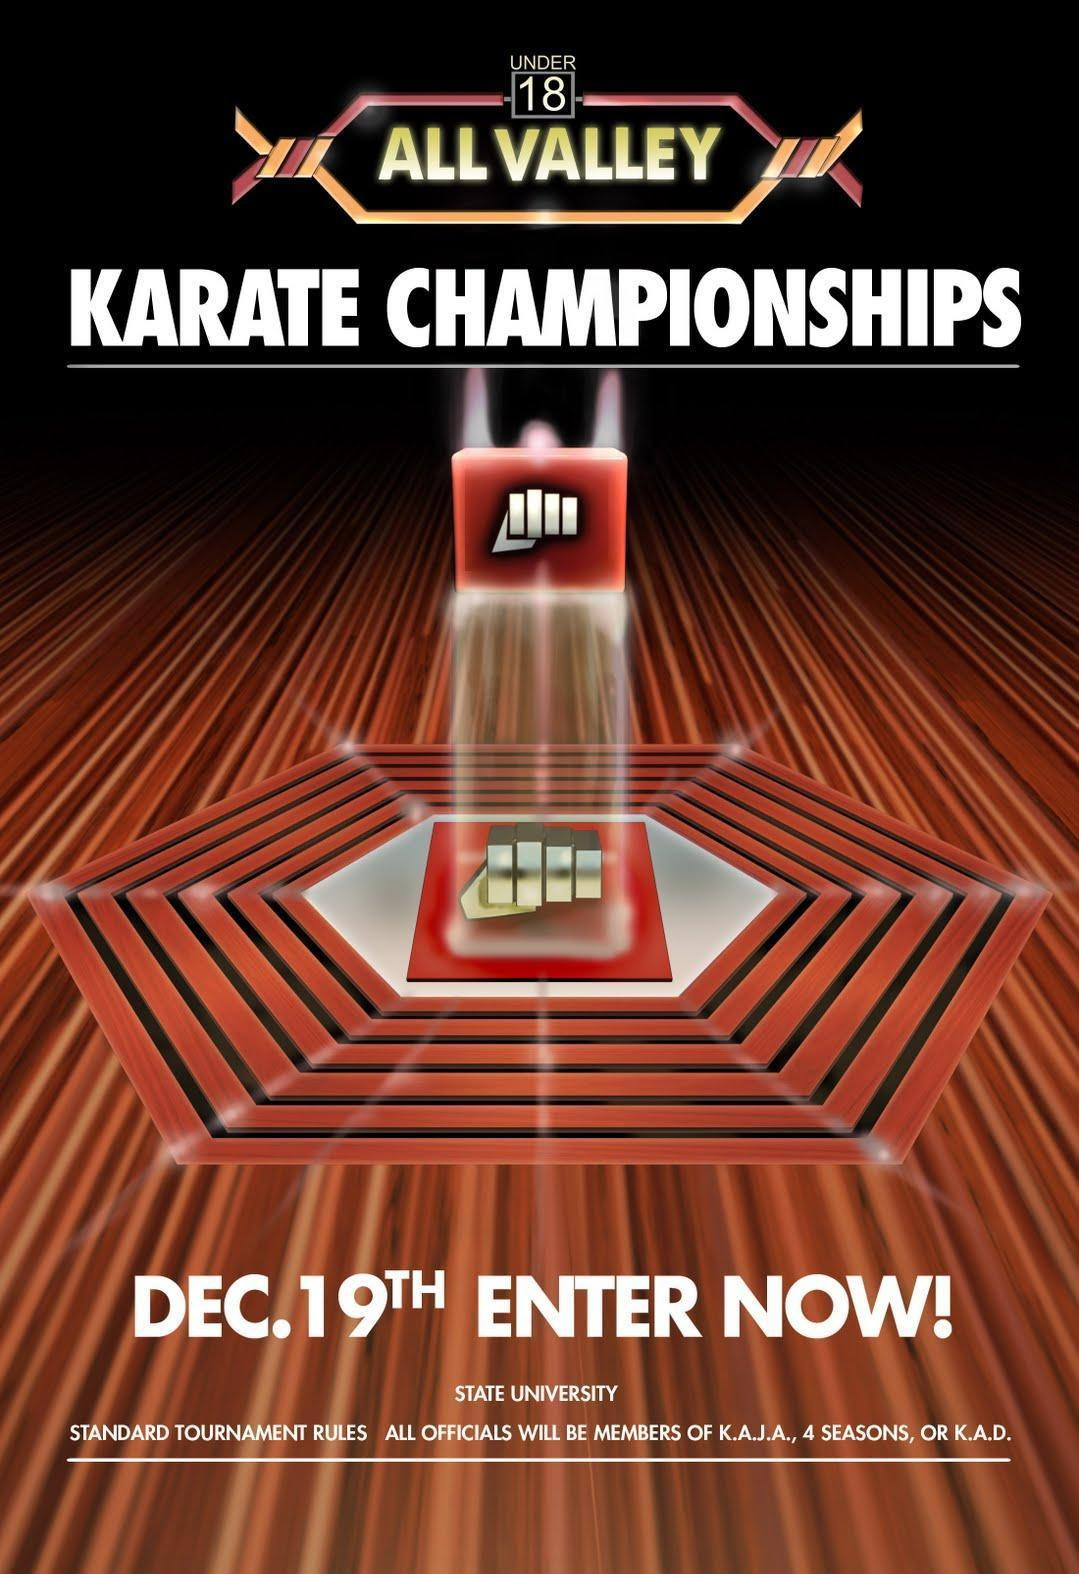 72192-Karate-Kid-Tournament-All-Valley-From-1984-Movie-FRAMED-CANVAS-PRINT-Toile